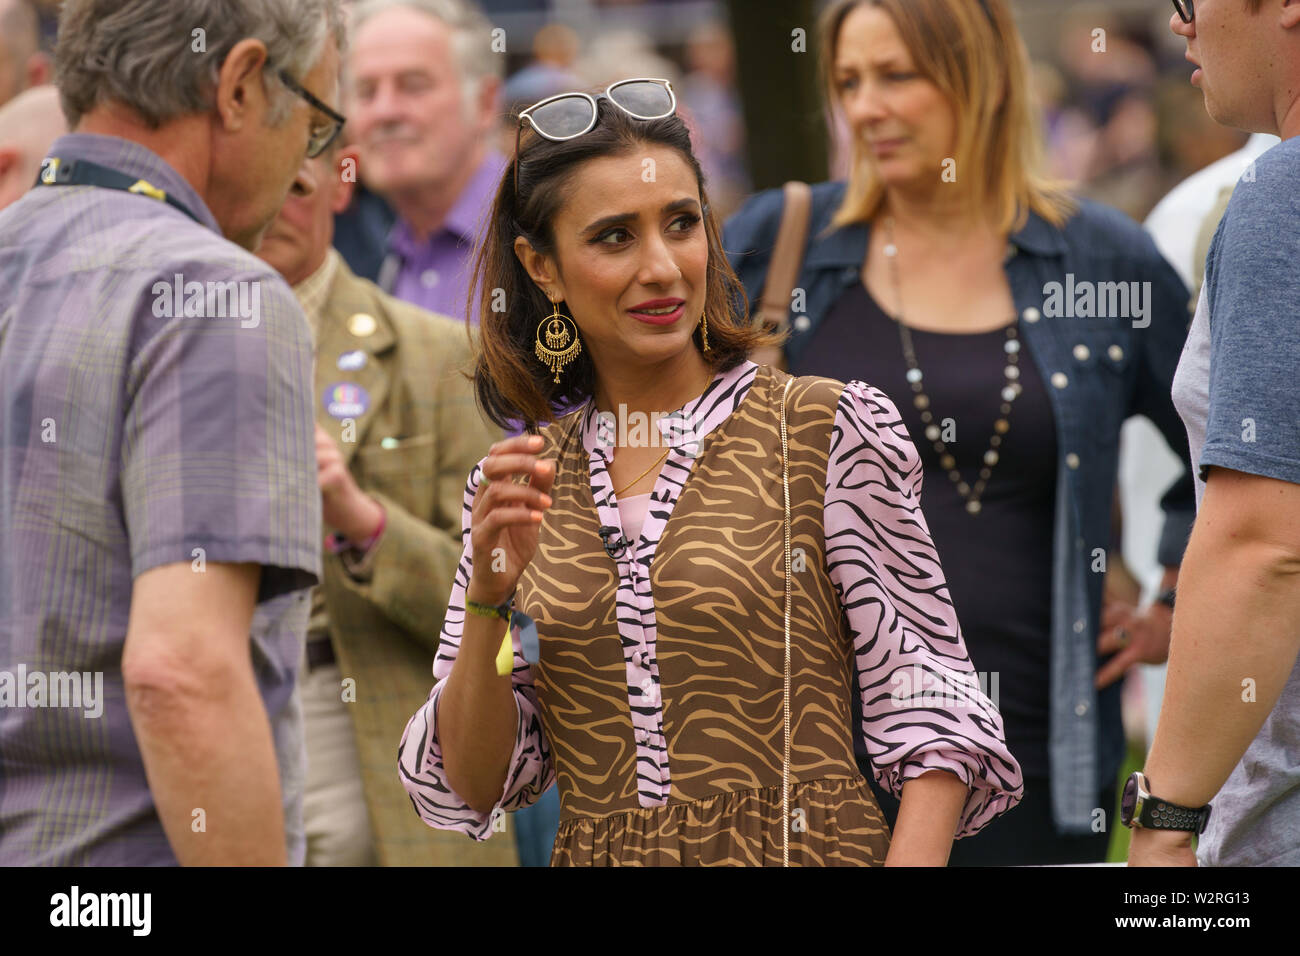 Anita Rani,Countryfile Live TV Presenter and Radio Broadcaster at  'The Great Yorkshire Show',Harrogate,North Yorkshire,England. - Stock Image